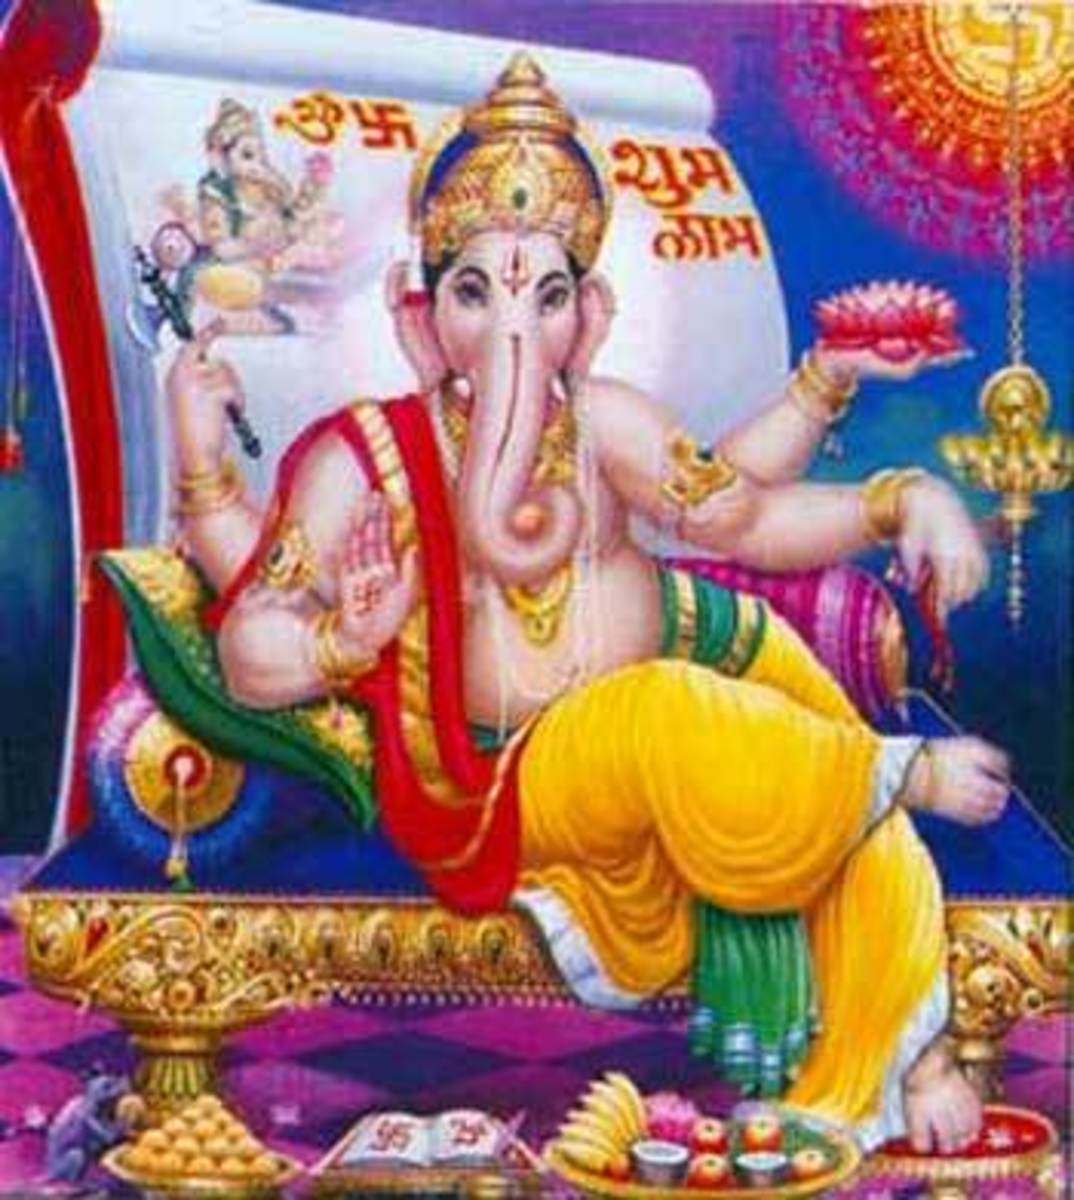 Mantras of Lord Ganesha, the Remover of Obstacles